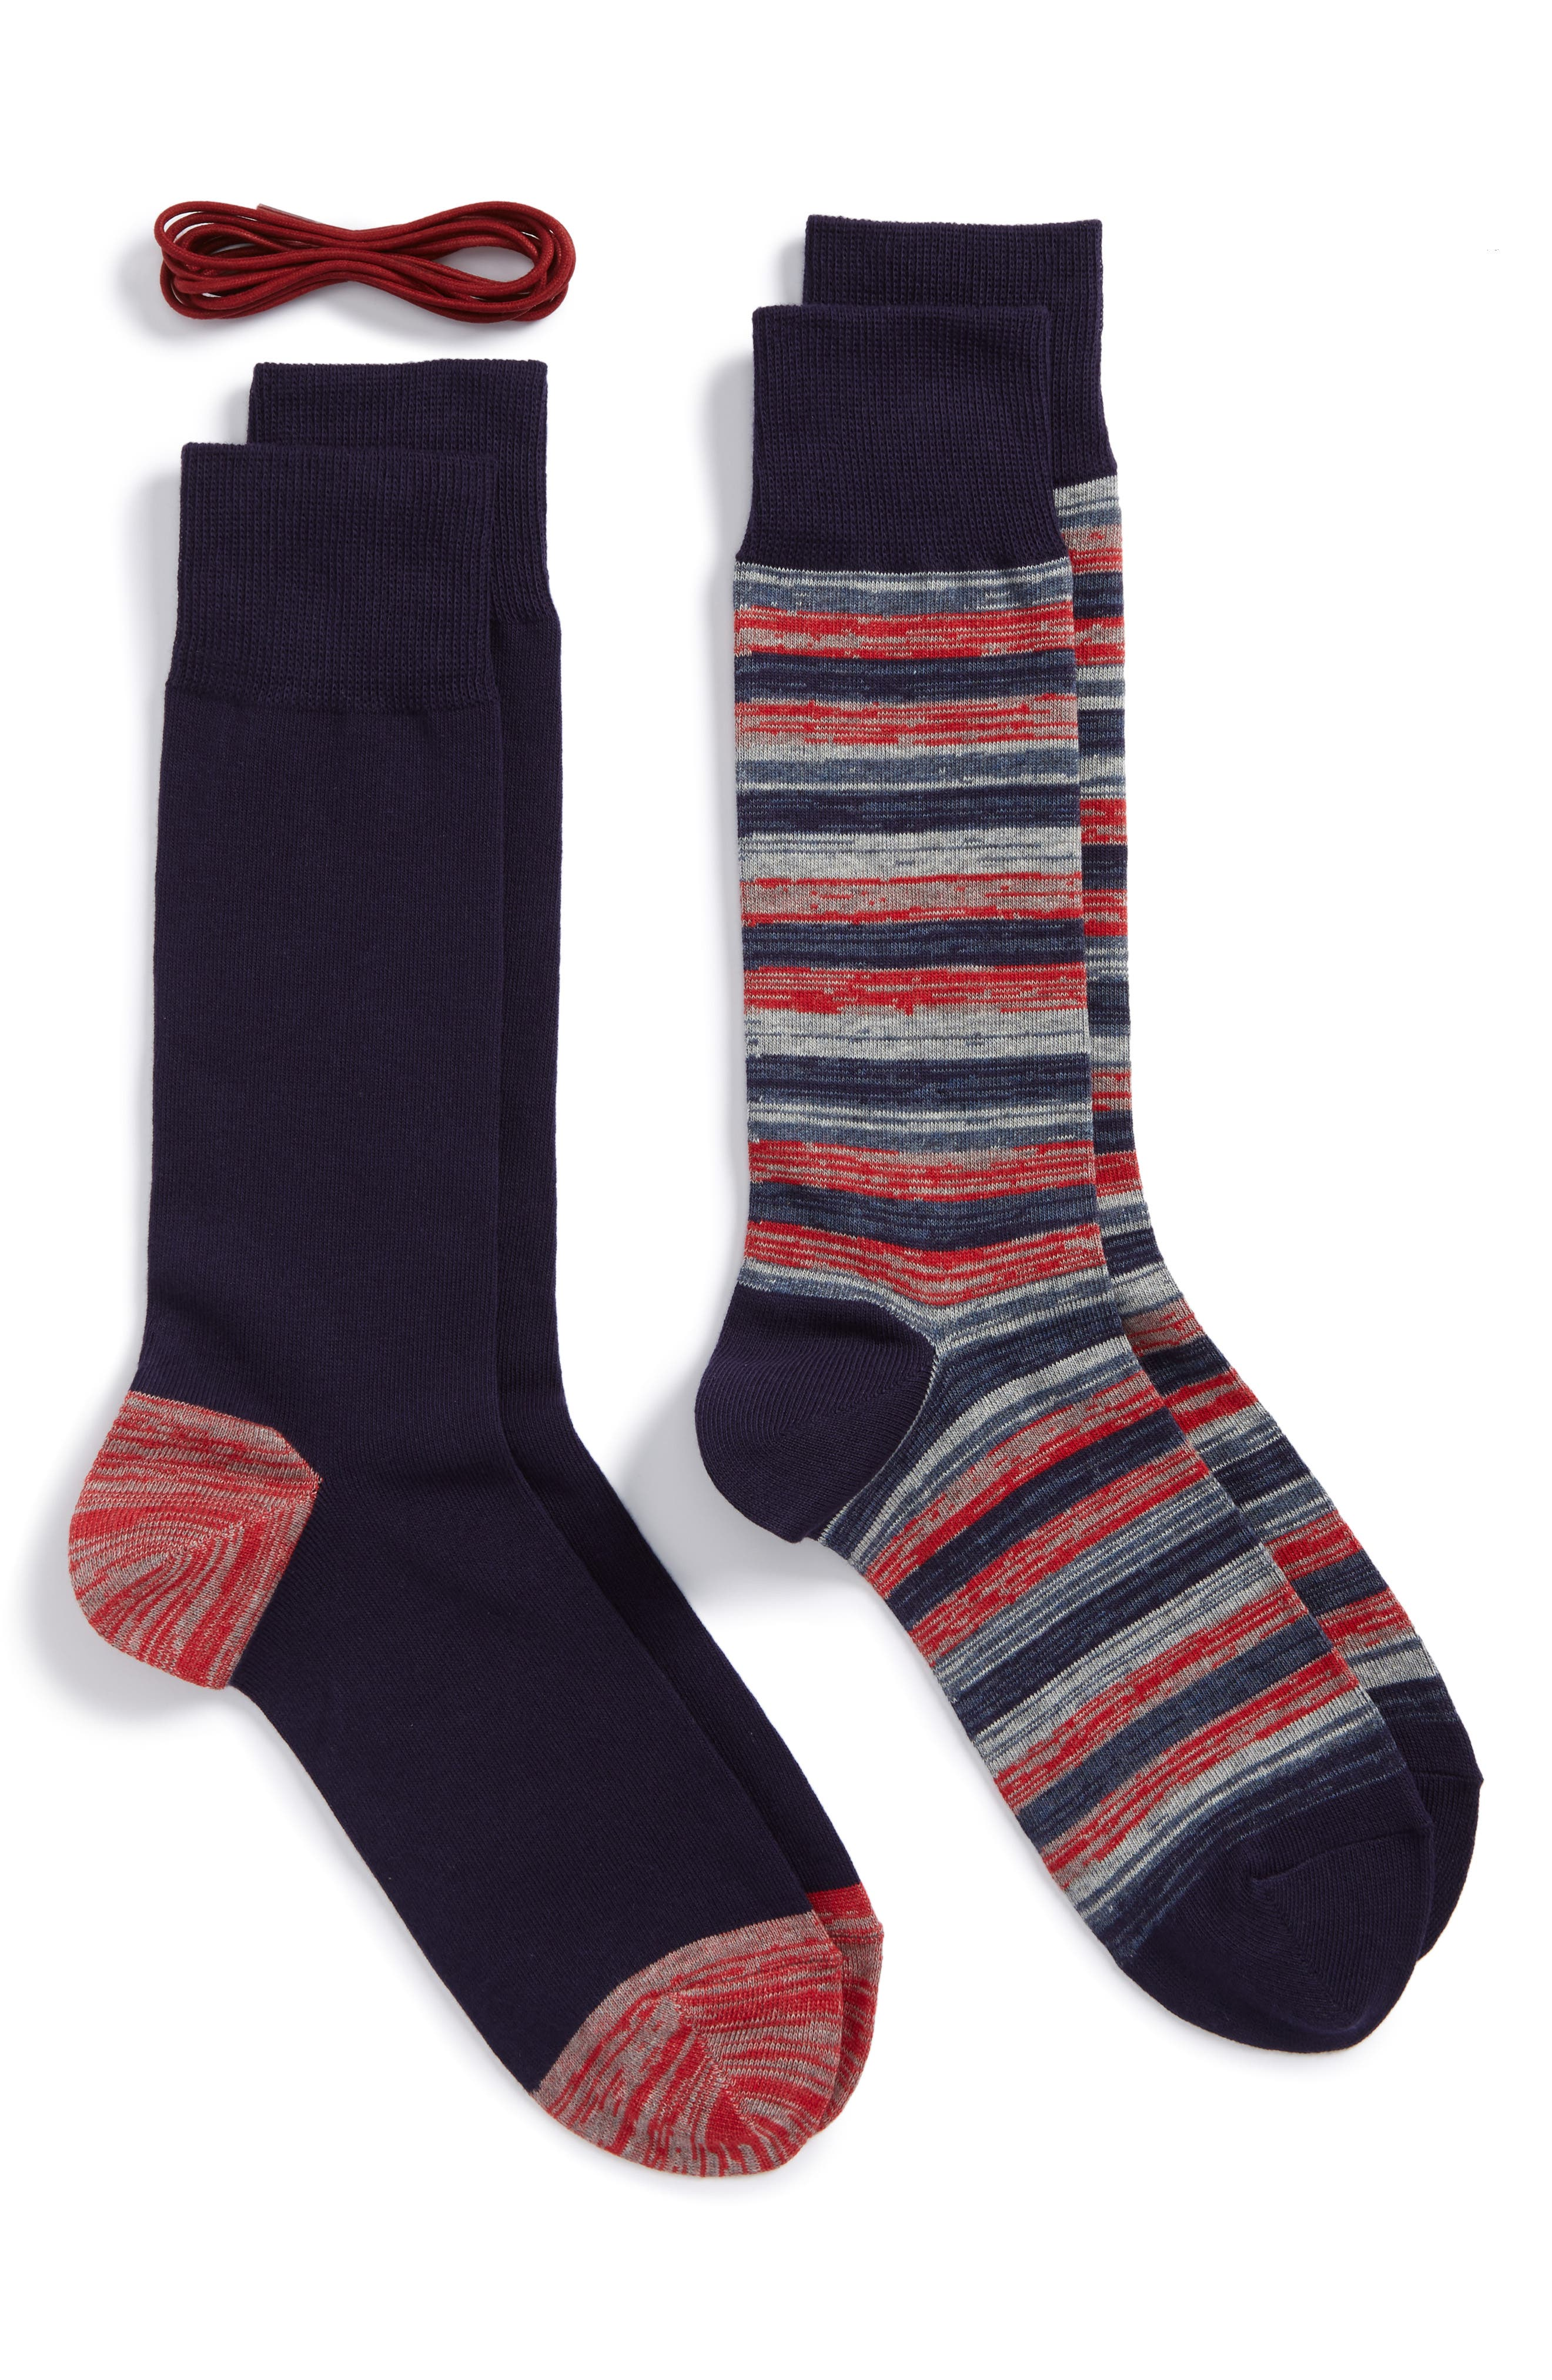 Cole Haan 2-Pack Socks & Laces Set ($31.95 Value)